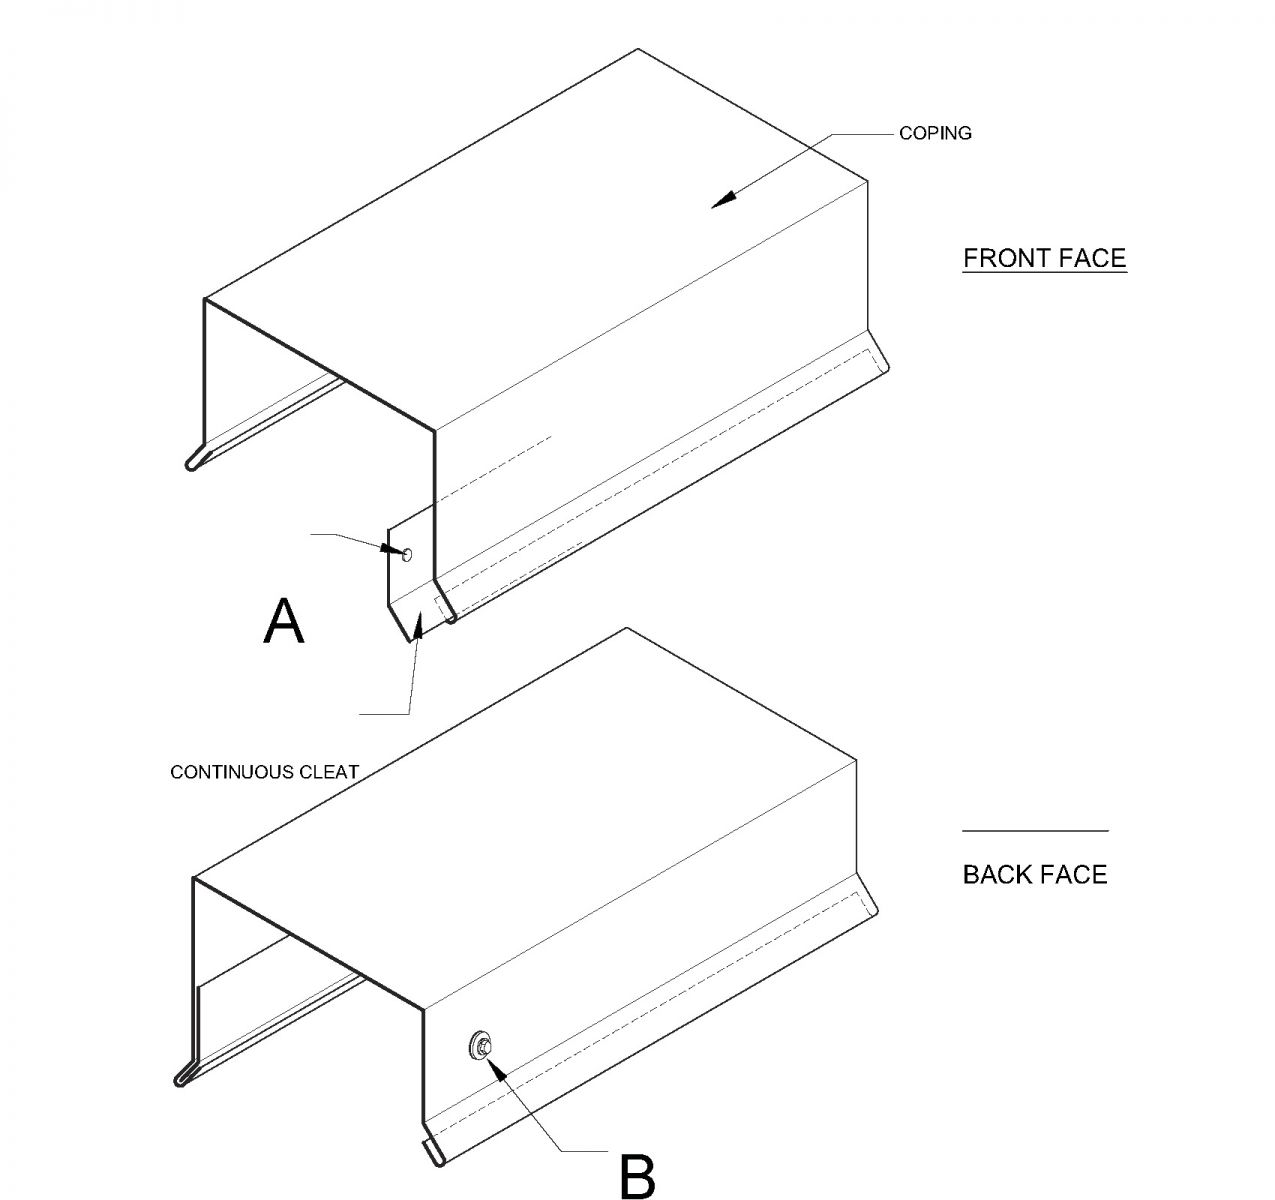 The Nrca Roofing Manual: Architectural Metal Flashing